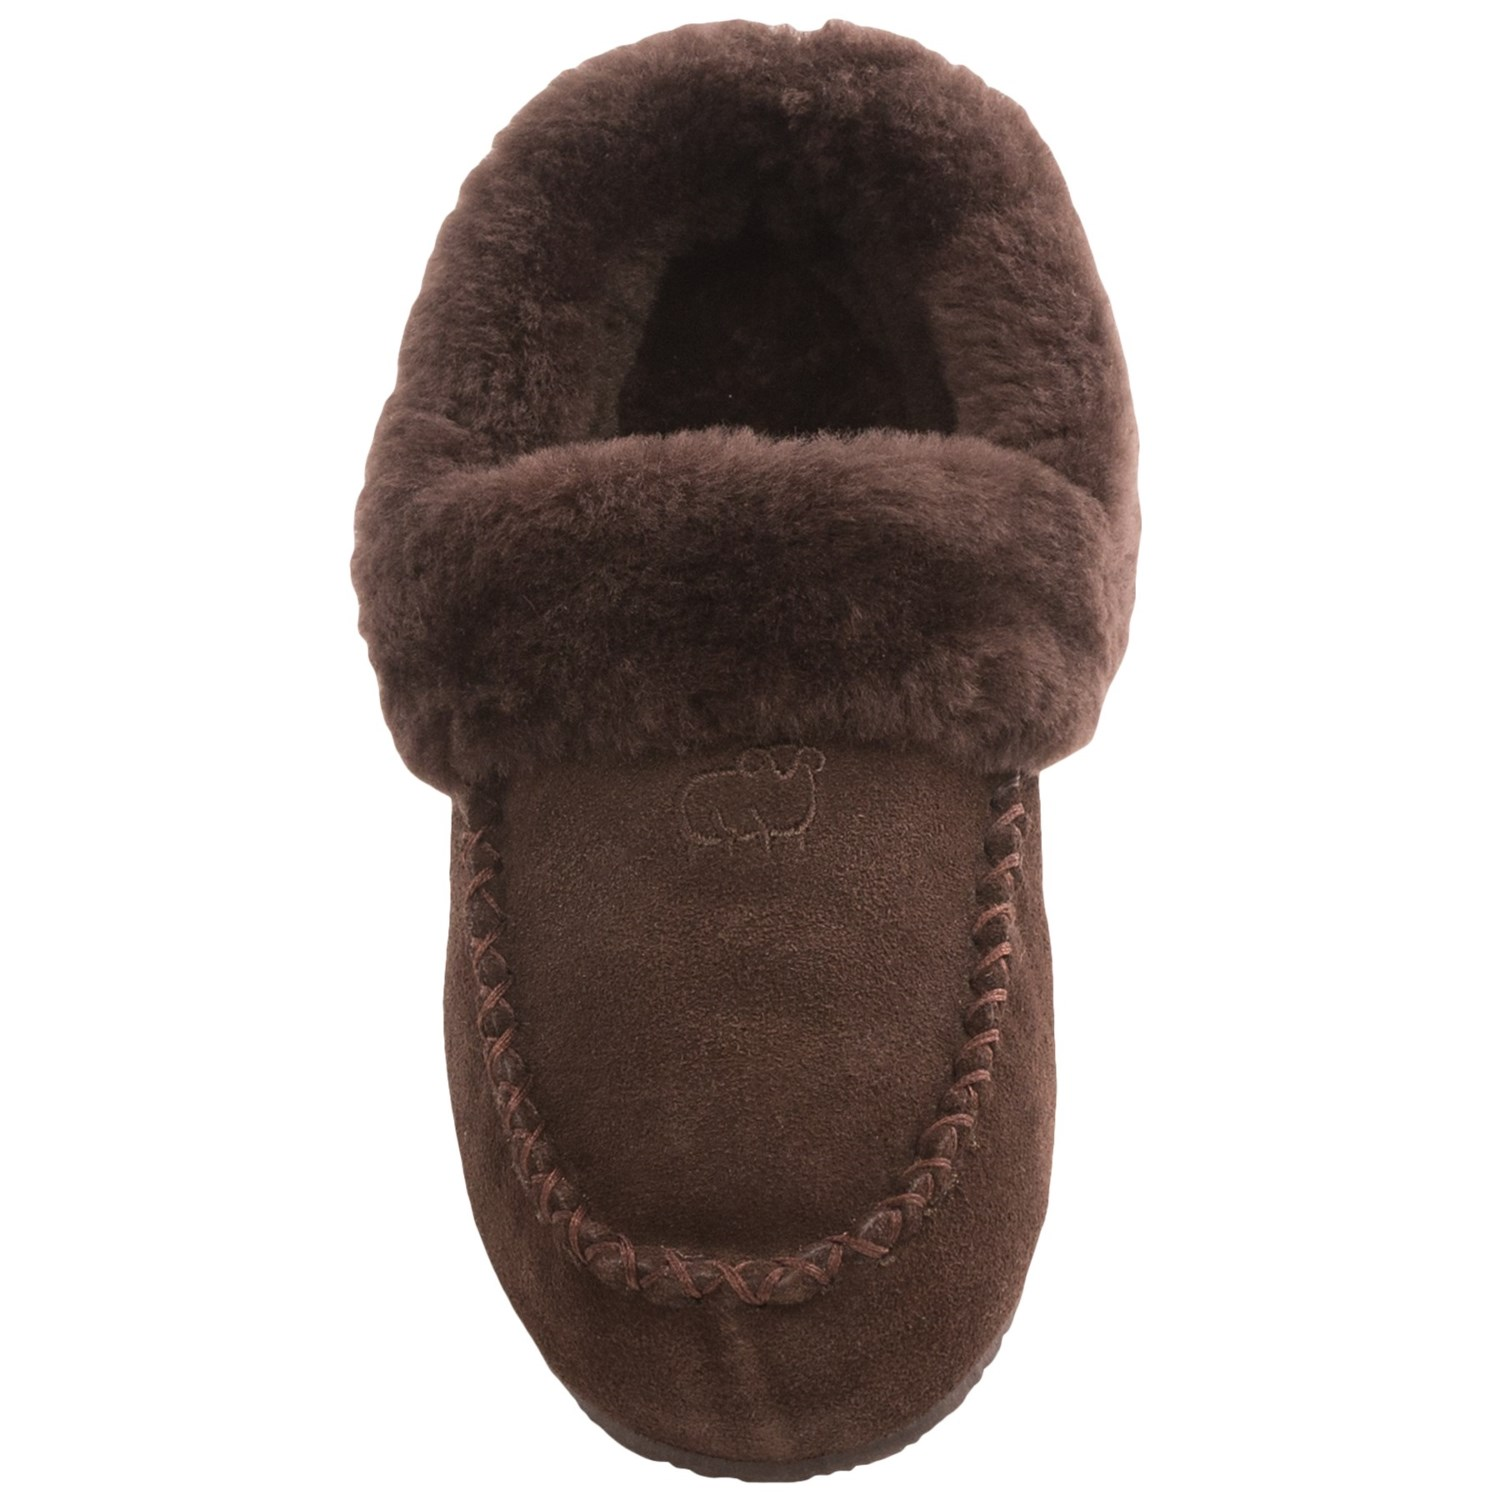 Slippers Australia Lamo Footwear Australian Bootie Slippers For Women